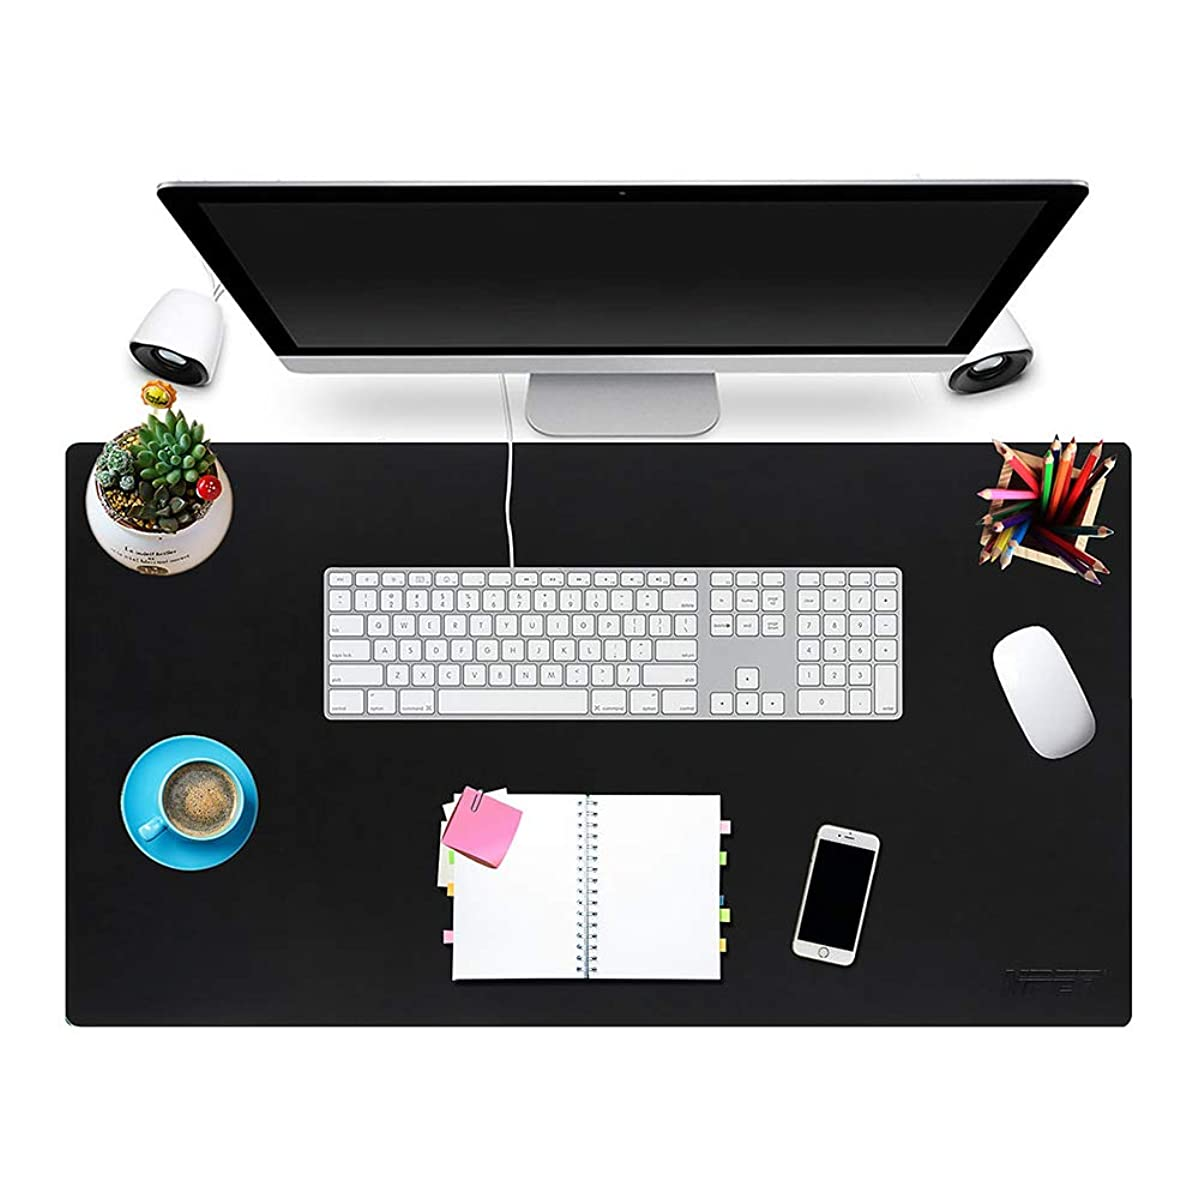 Multifunctional Office Desk Pad 31'' x 17'', NPET P10 Ultra Thin Waterproof PU Leather Mouse Pad, Extended Large Mat with Non-Slip Rubber Base, Dual Use Desk Writing Mat for Office/Home